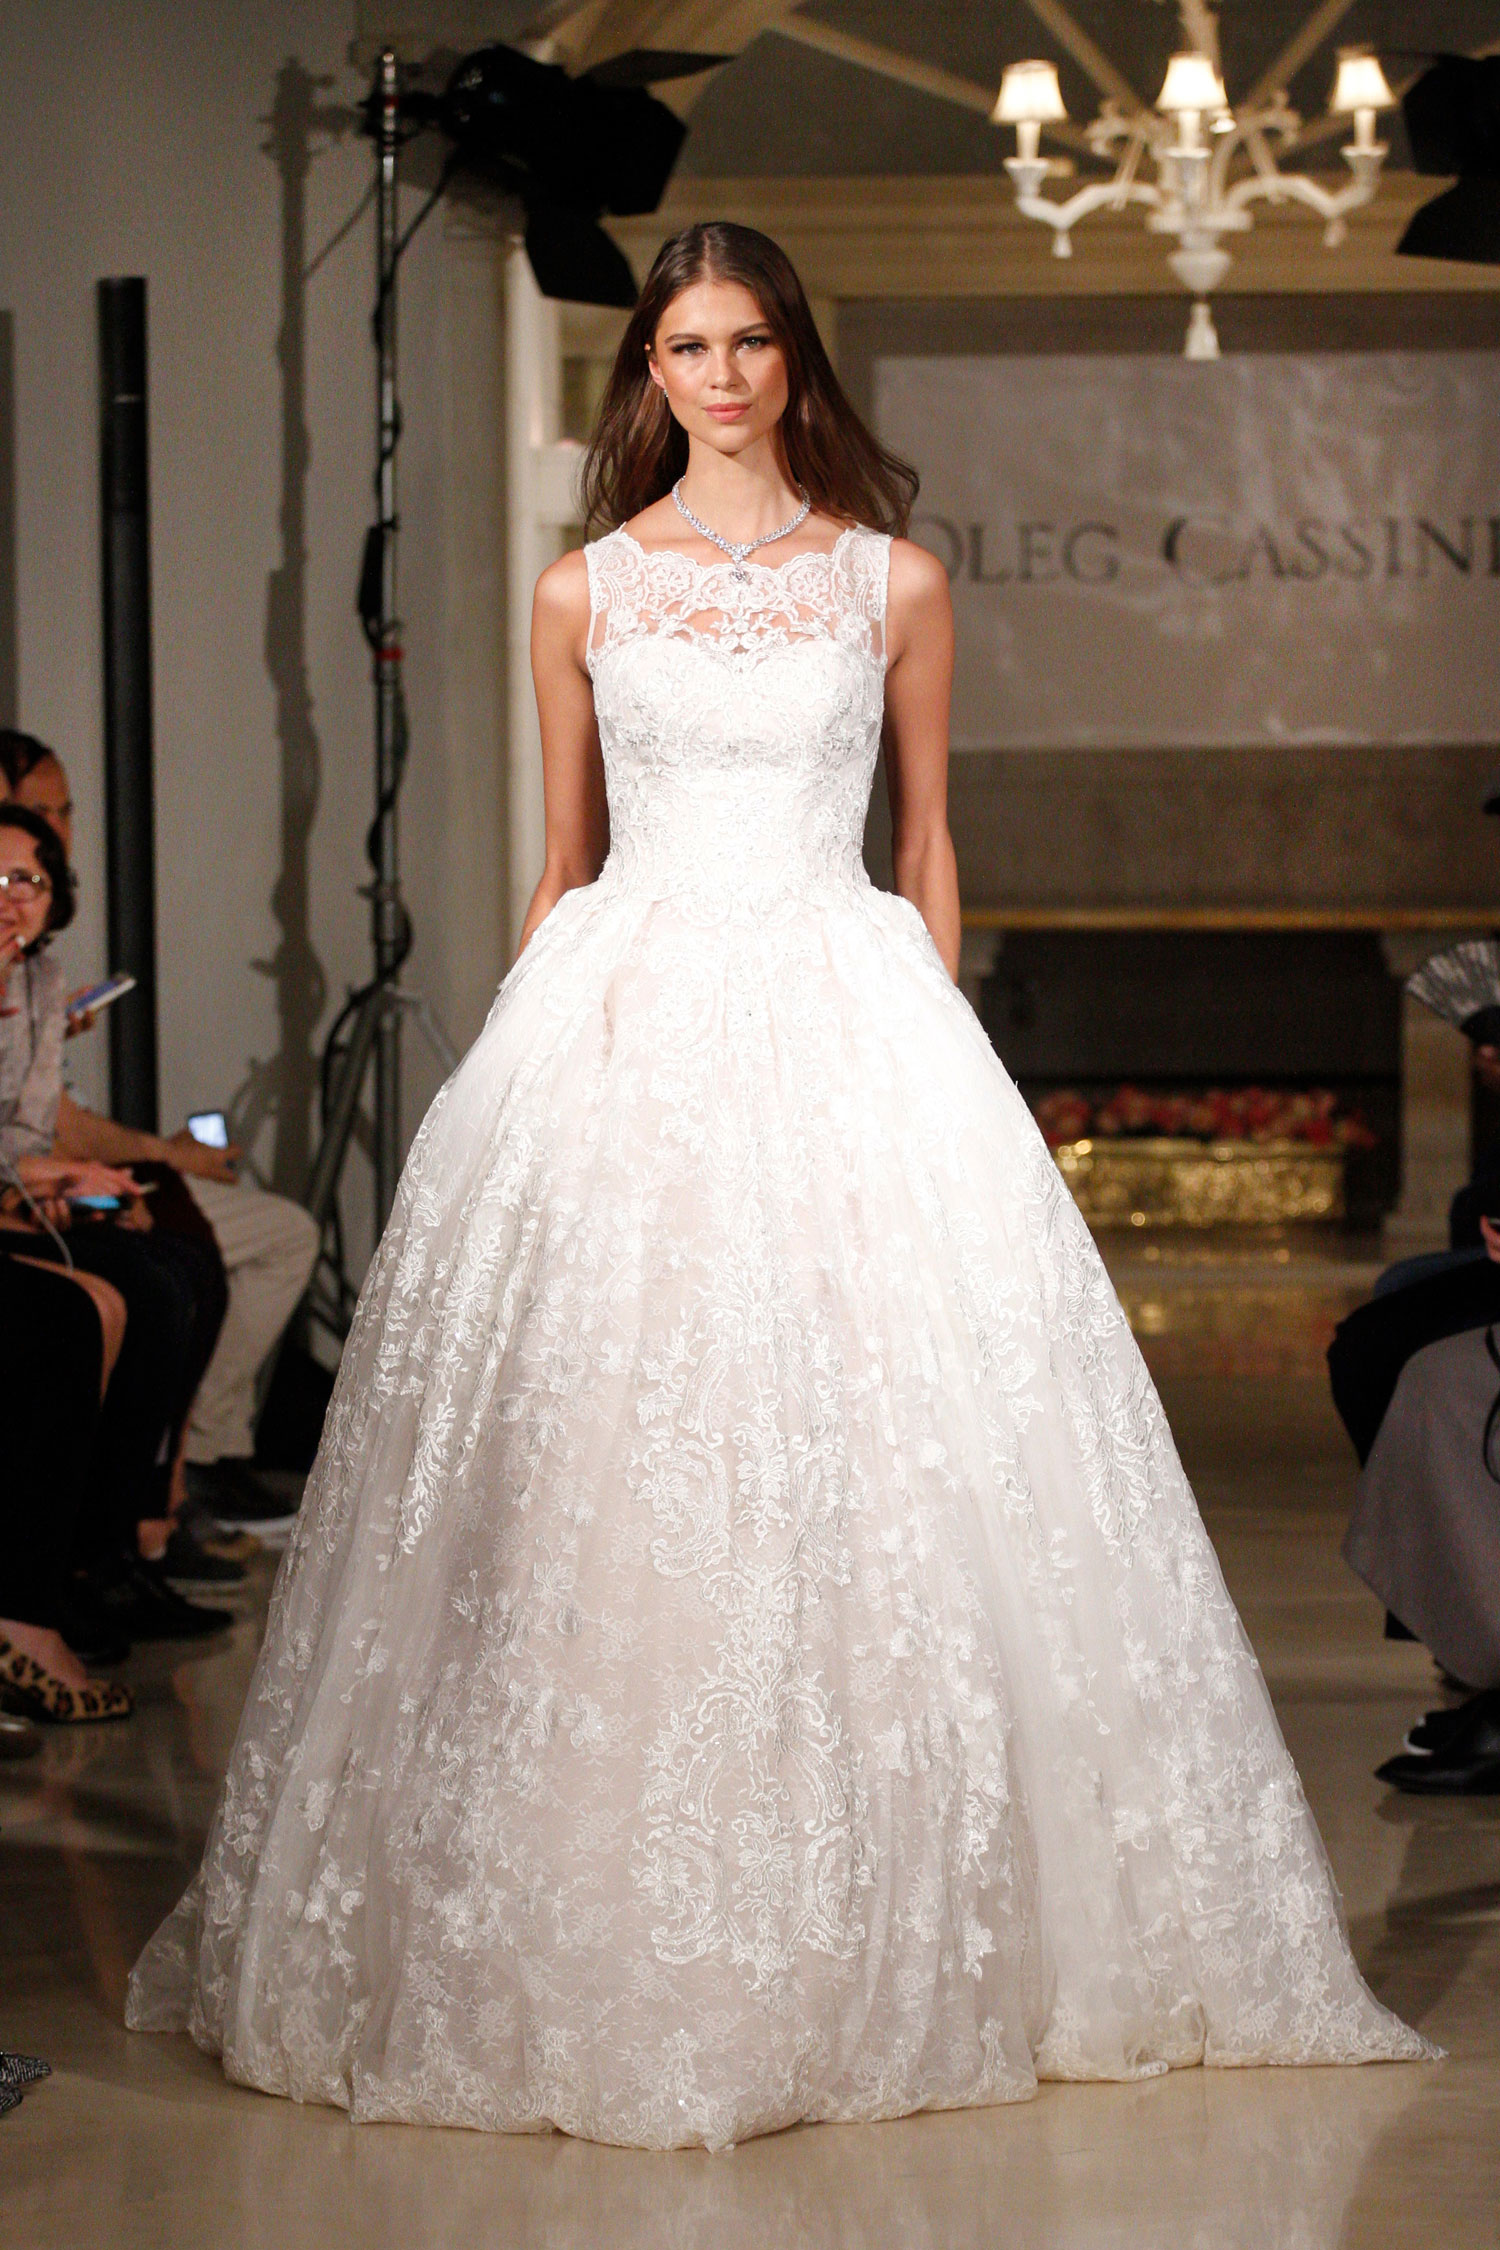 Oleg Cassini ball gown with sweetheart neckline and lace overlay